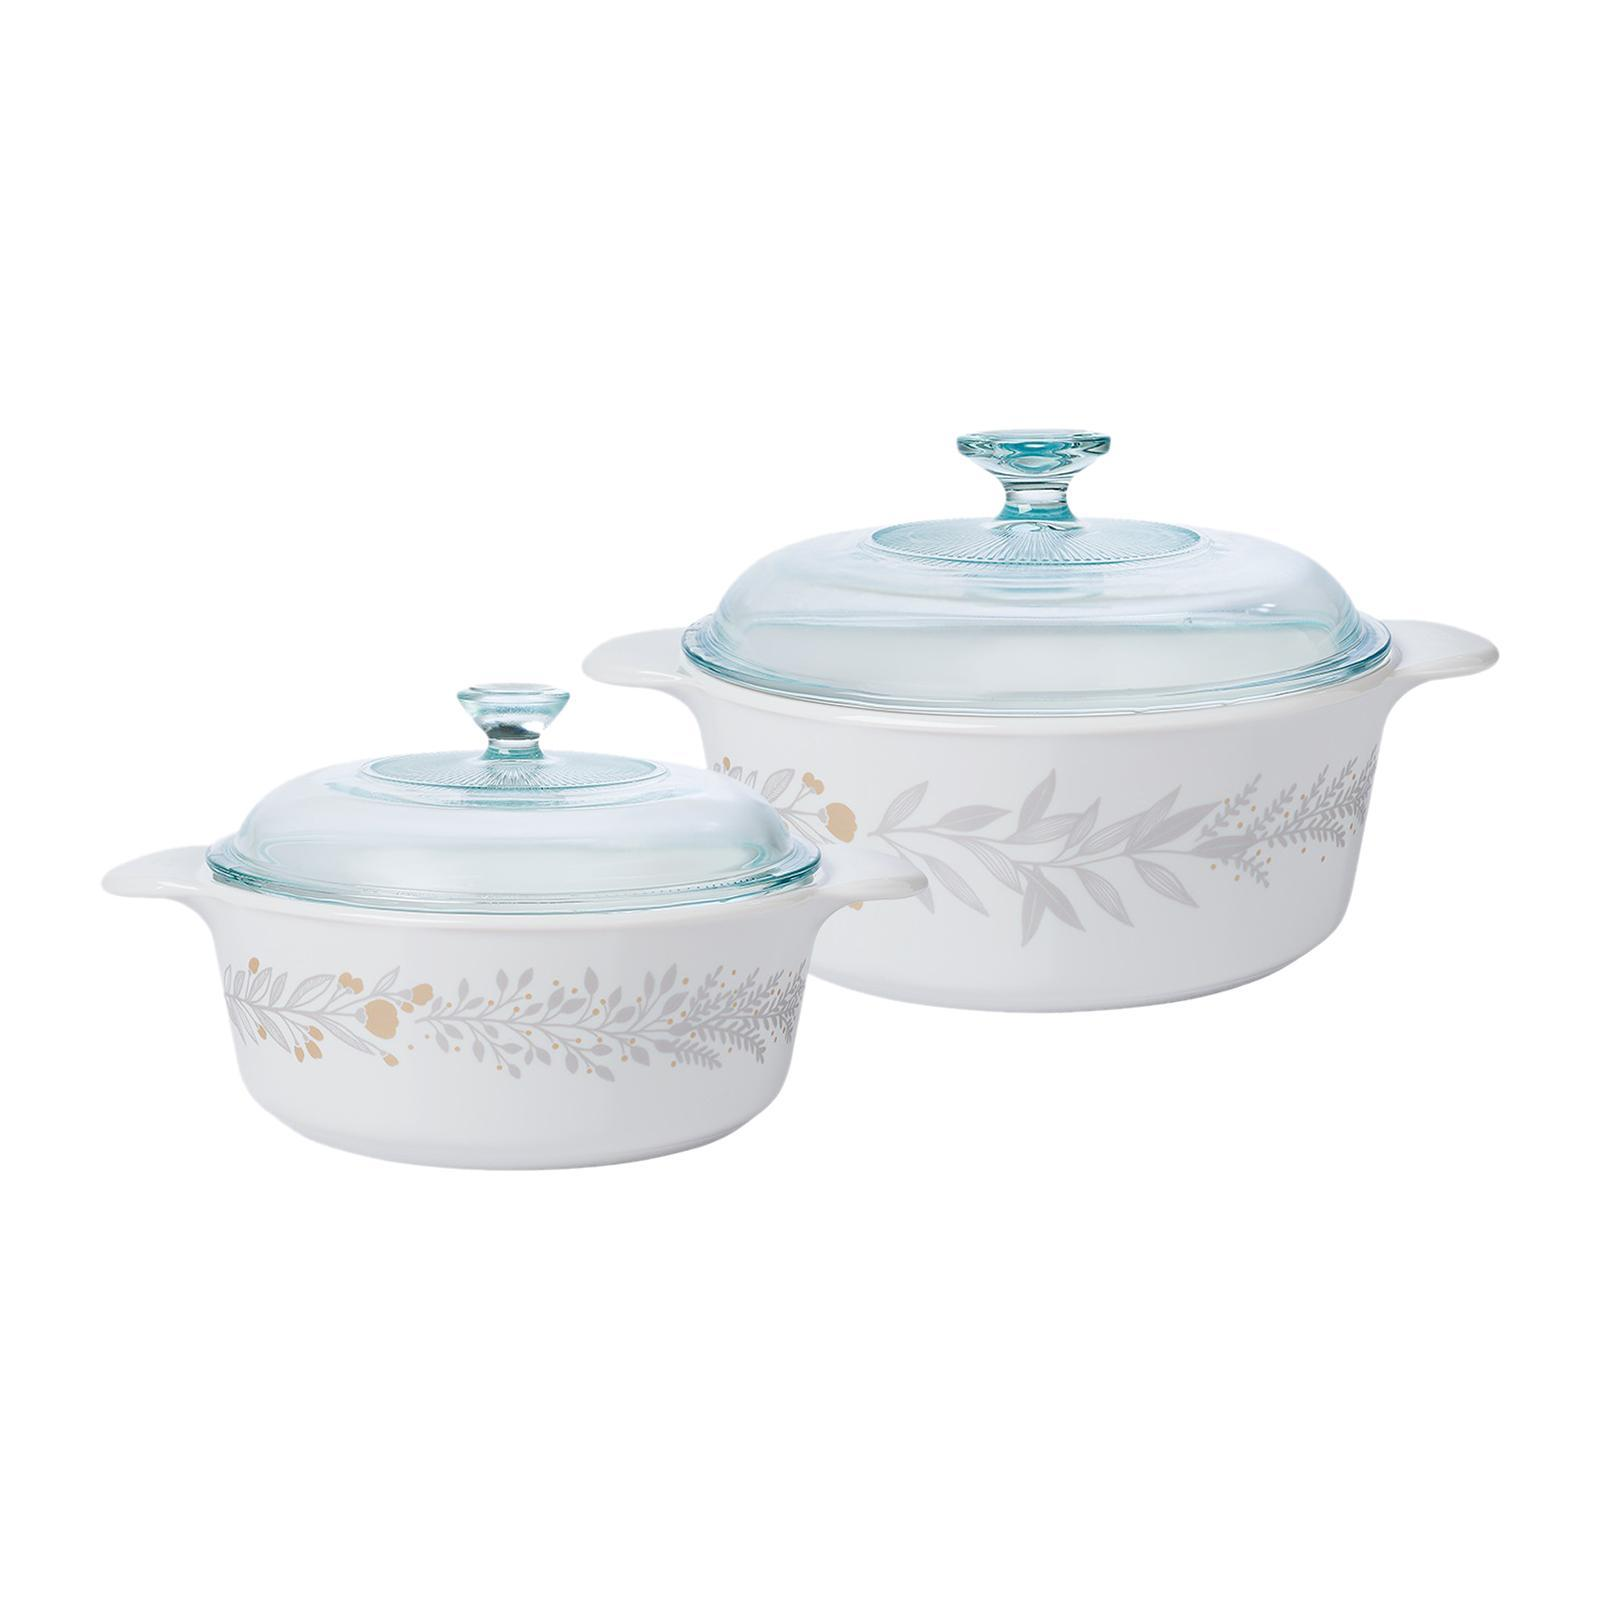 Corningware 4 PCS Round Casserole Set (Design: Silver Crown)